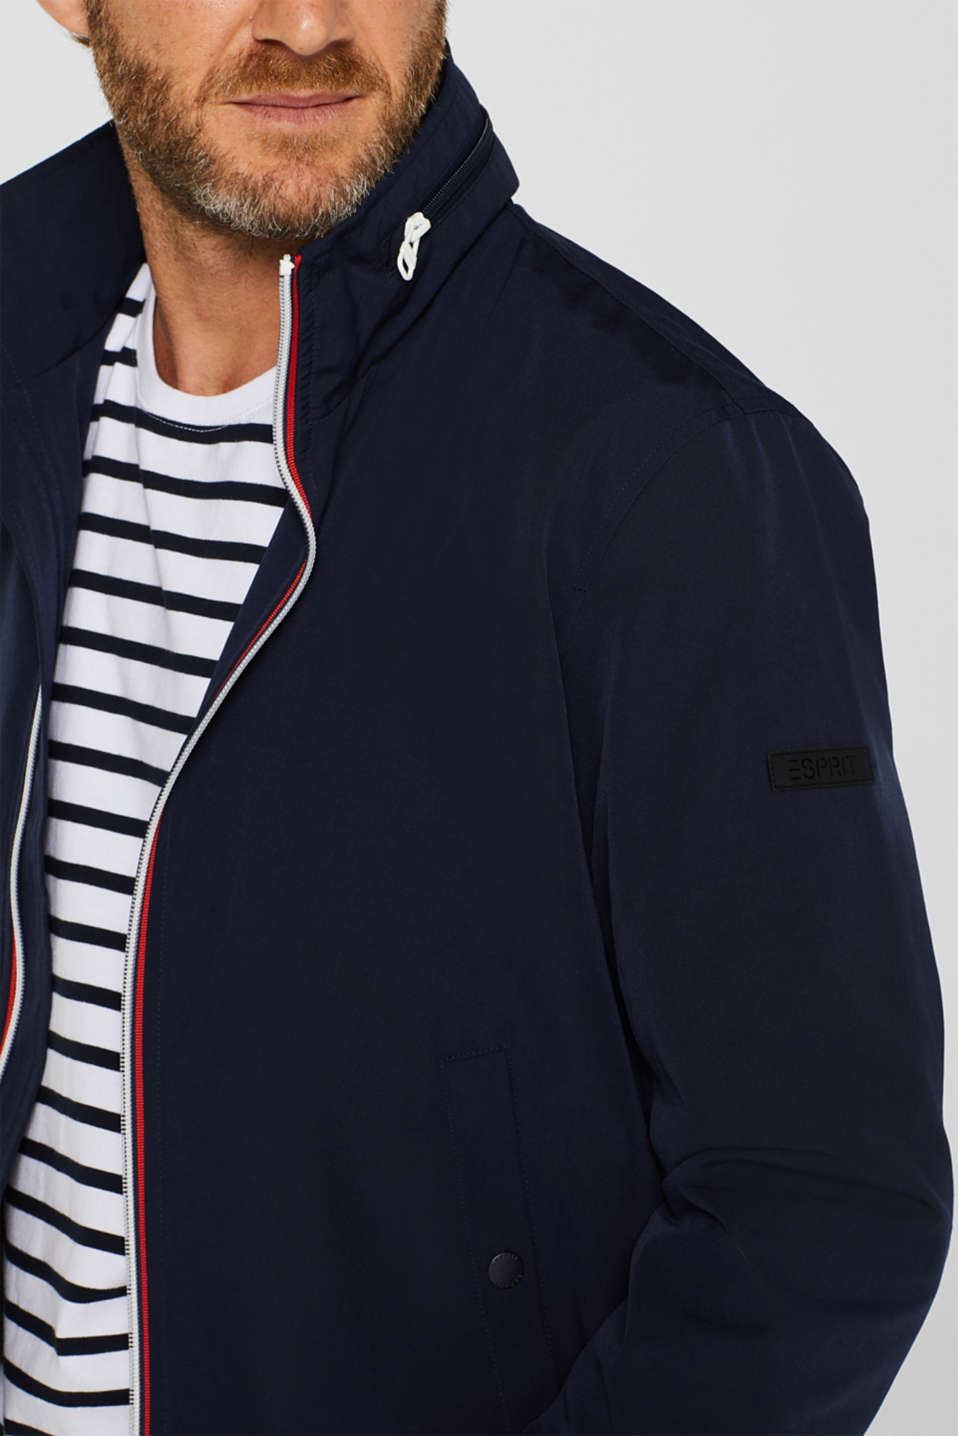 Bomber jacket with an adjustable hood, NAVY, detail image number 2